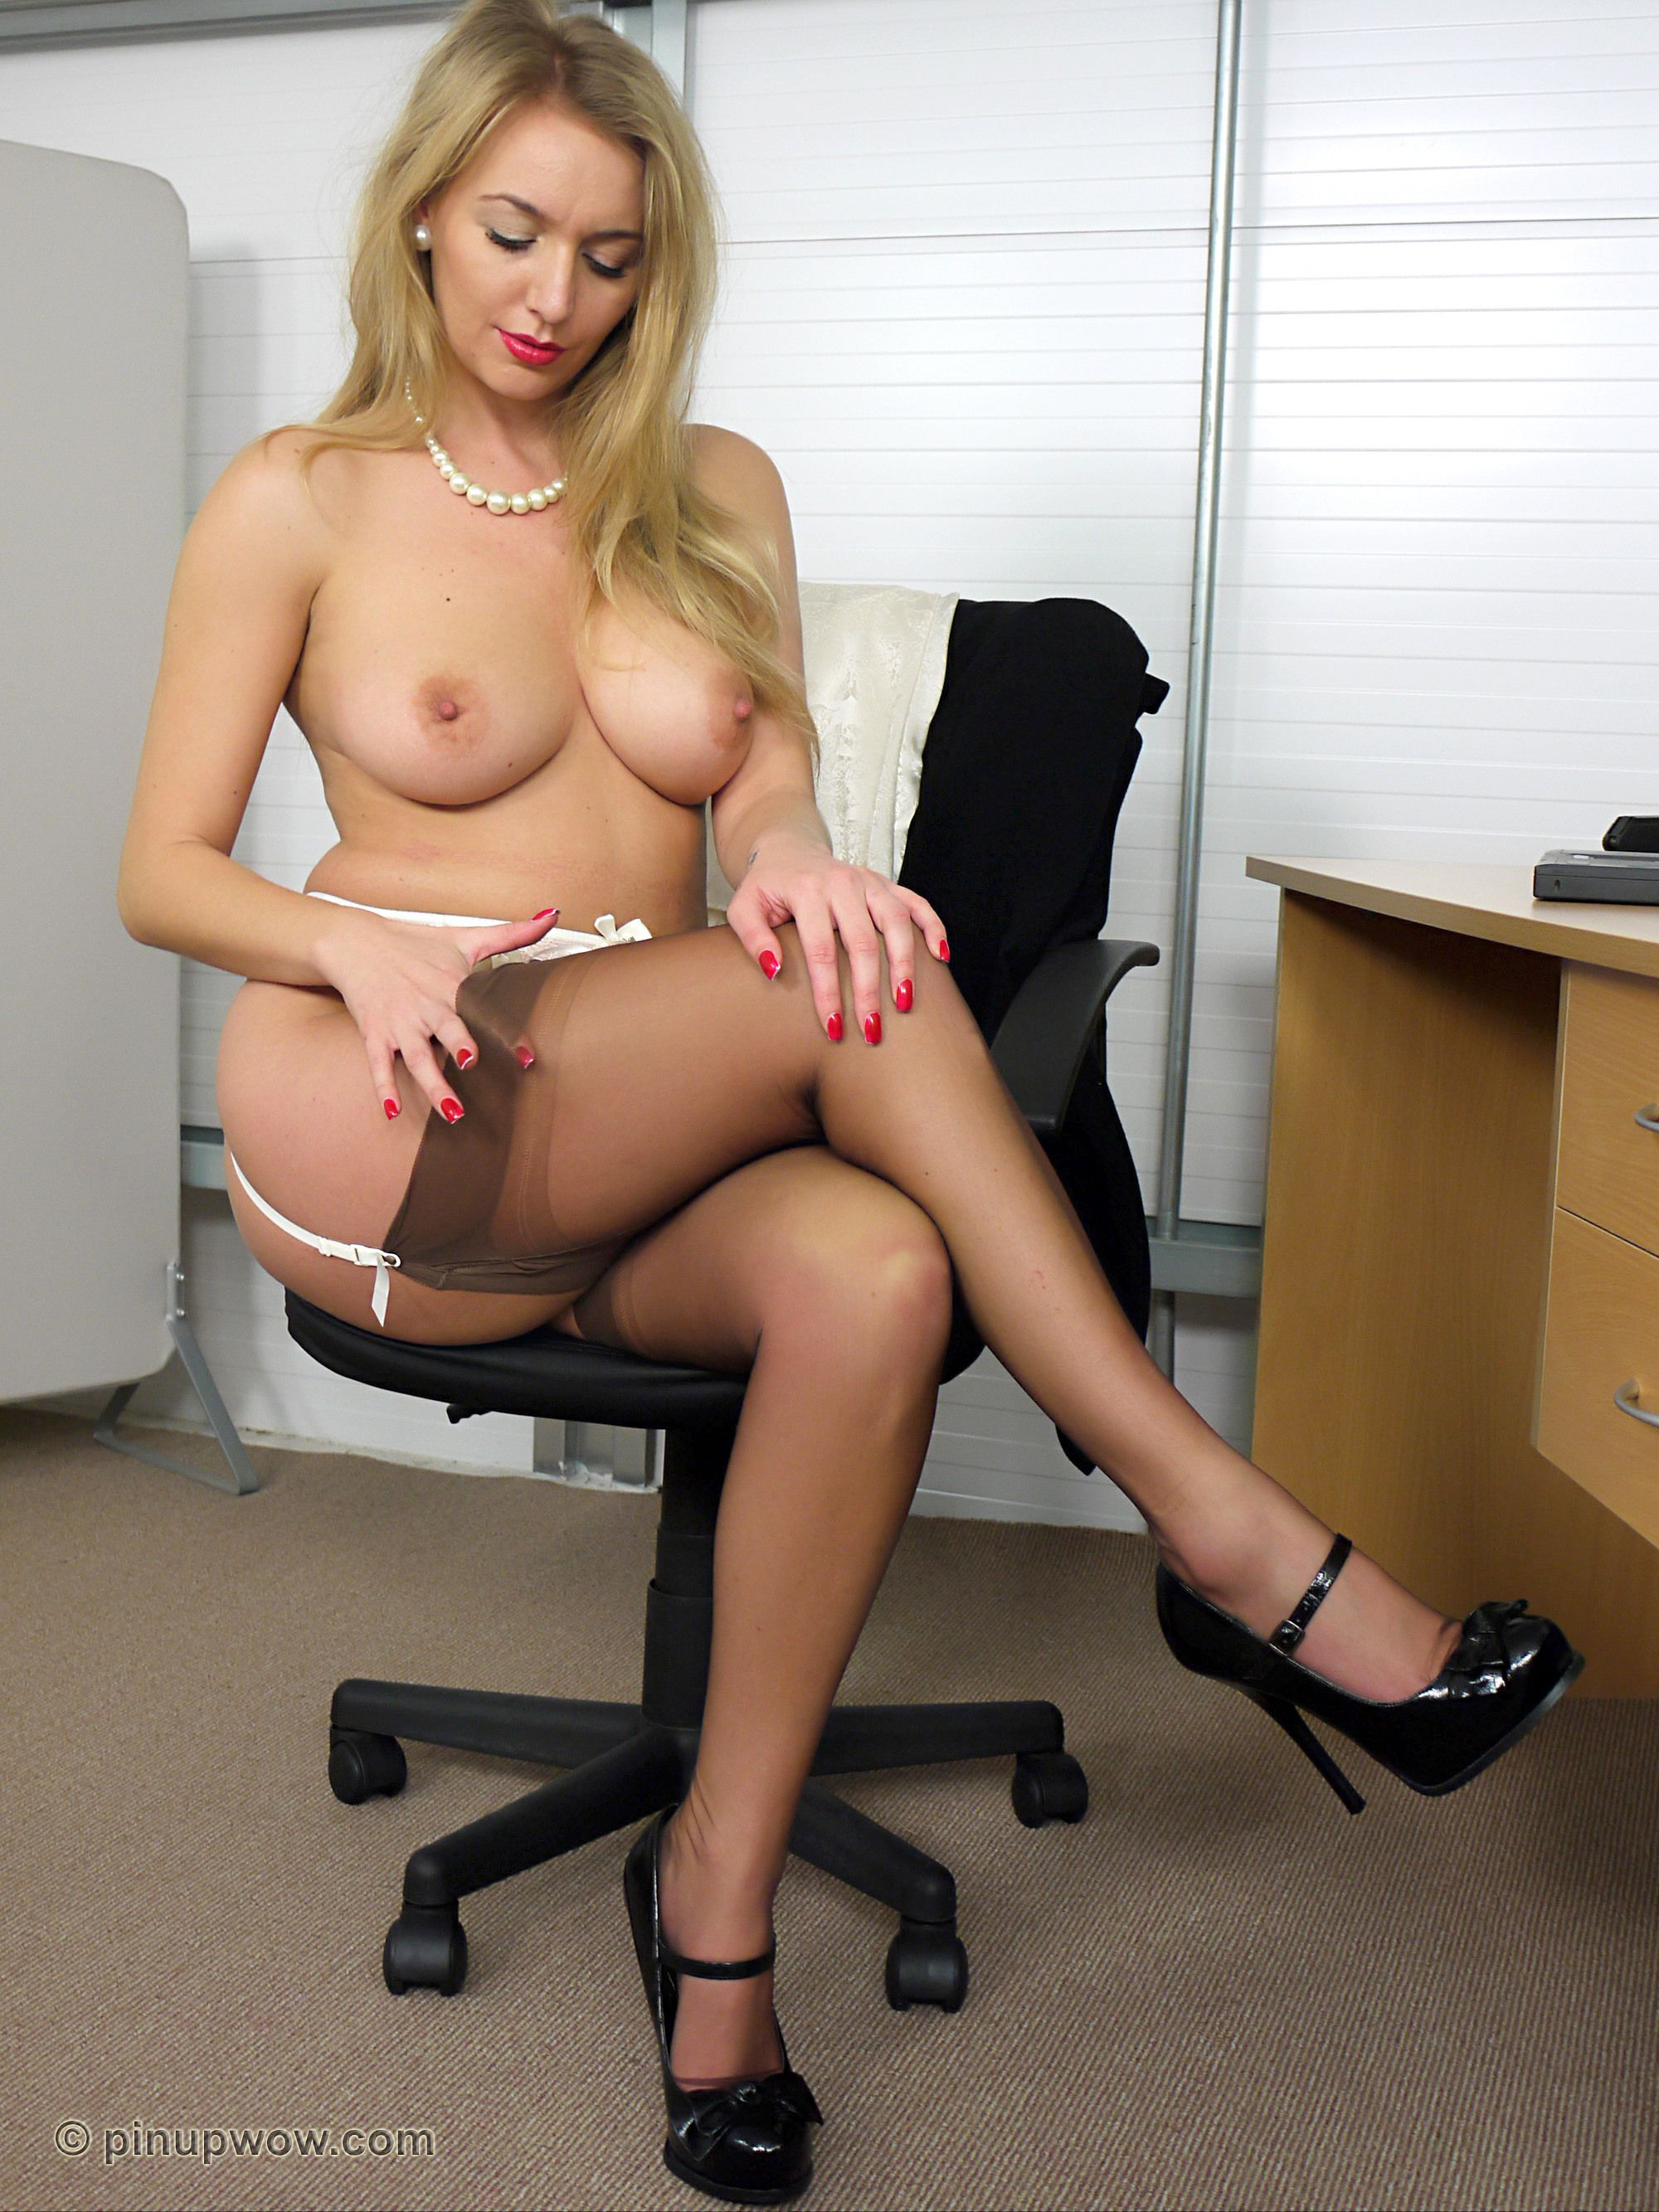 Sweet pink teacher upskirt gallery the pipe really